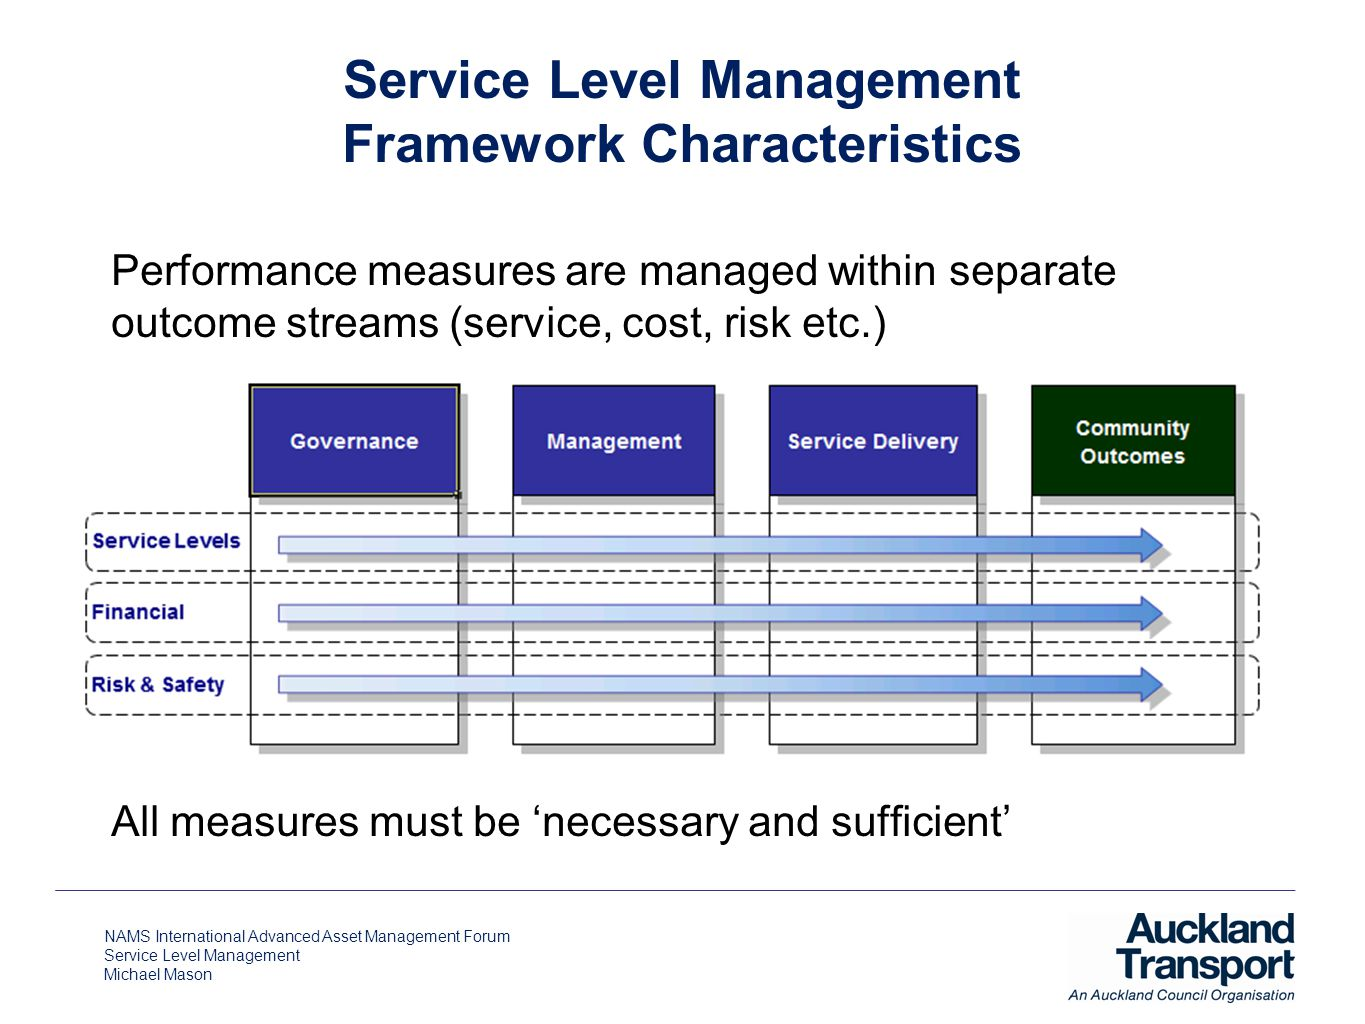 NAMS International Advanced Asset Management Forum Service Level Management Michael Mason Service Level Management Framework Characteristics Performance measures are managed within separate outcome streams (service, cost, risk etc.) All measures must be necessary and sufficient